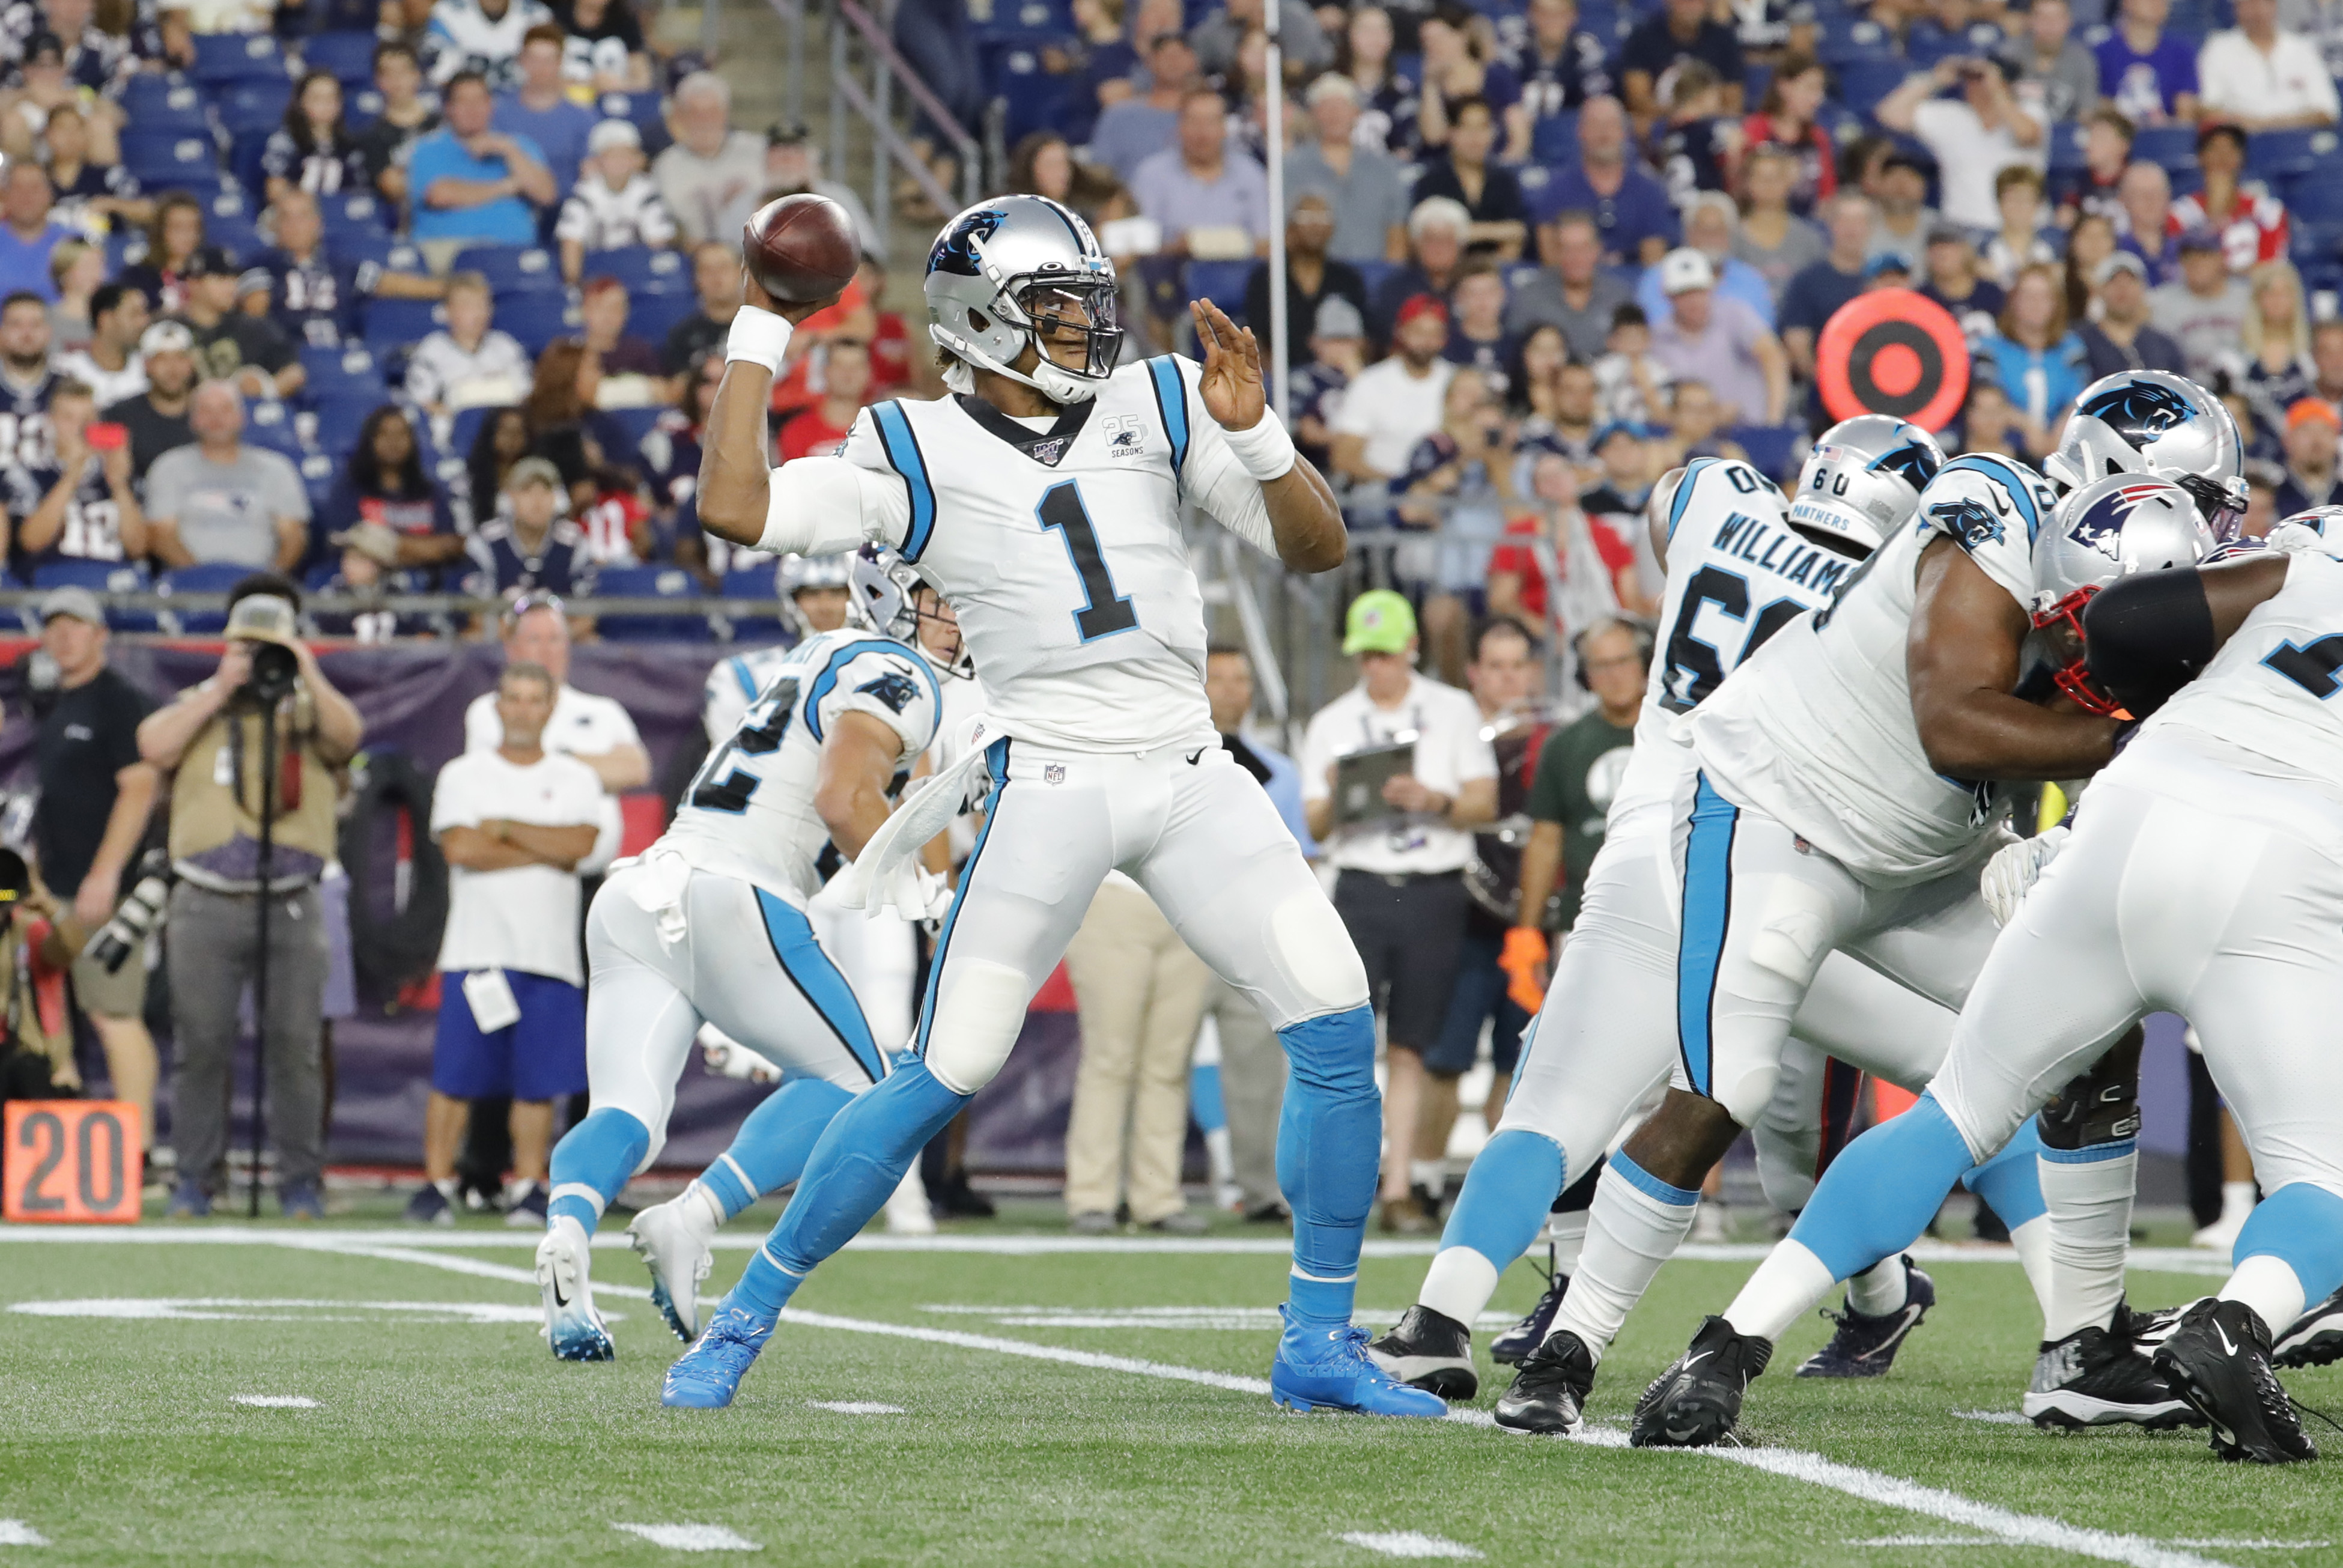 Carolina Panthers quarterback Cam Newton passes the ball during a preseason game between the New England Patriots and the Carolina Panthers on August 22, 2019, at Gillette Stadium in Foxborough, Massachusetts.